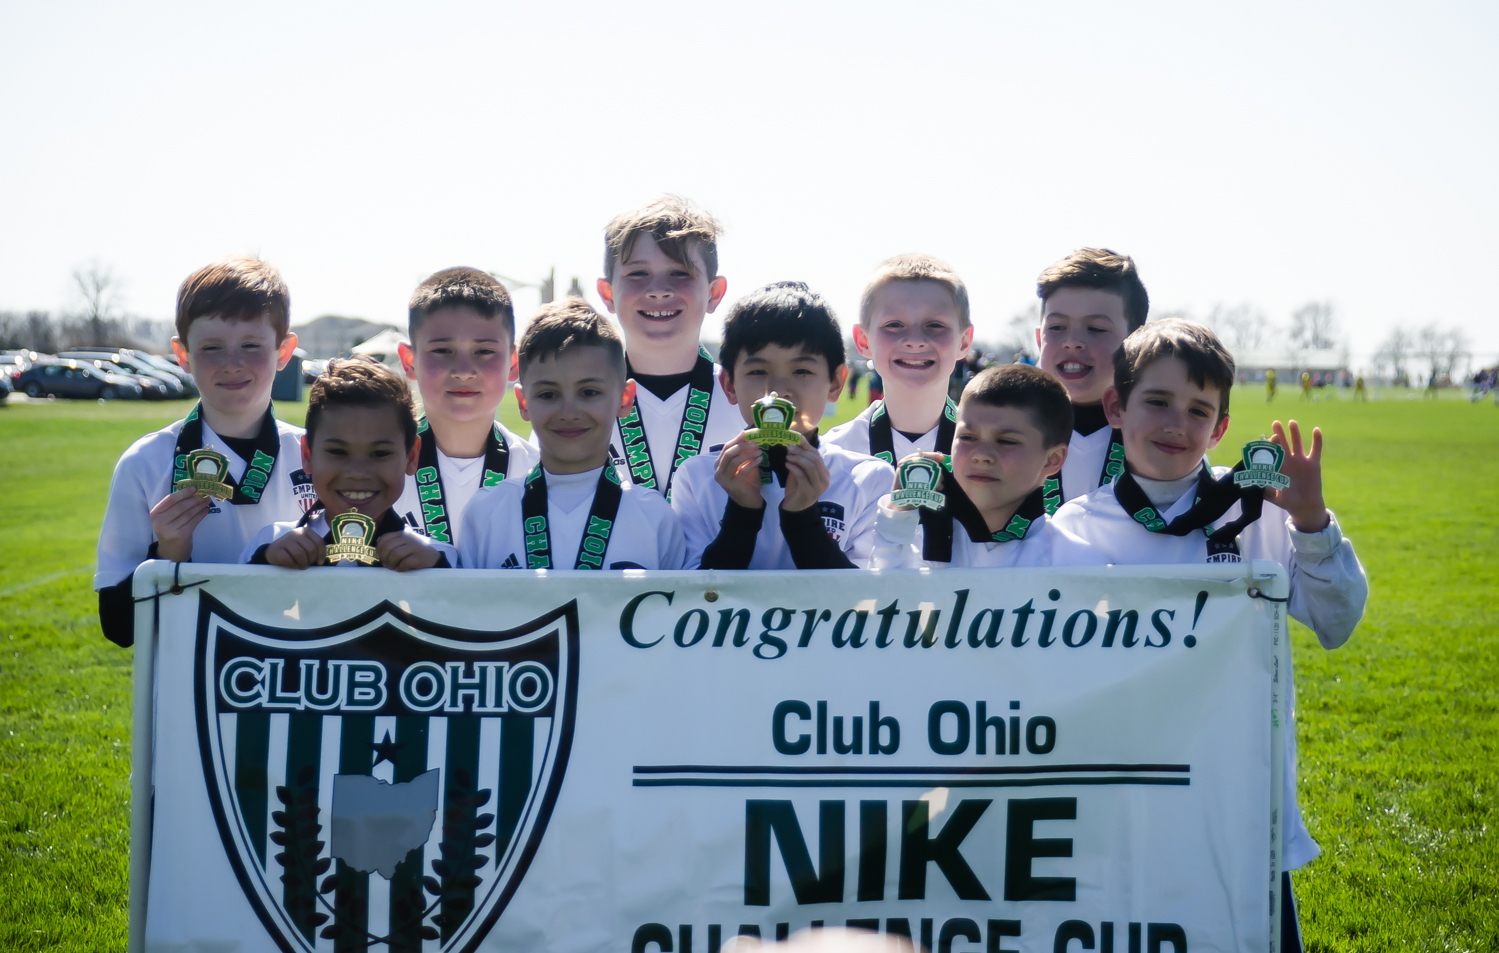 Congratulations to Empire United 2008 Boys in winning their bracket at Club Ohio Nike Challenge Cup 2018!